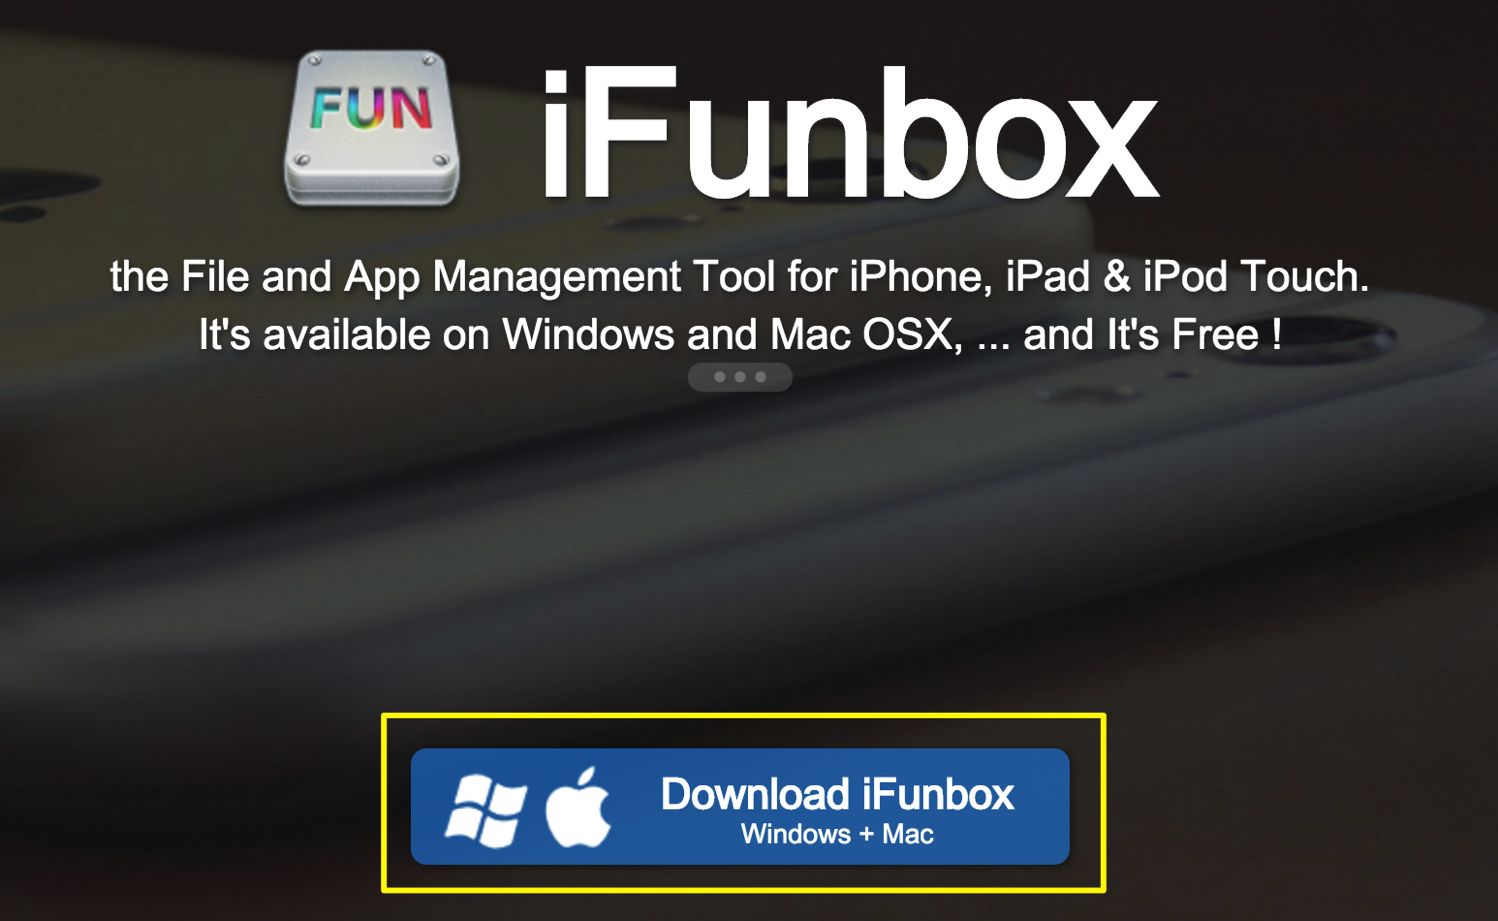 IFunbox the File and App Management Tool for iPhone iPad iPod Touch